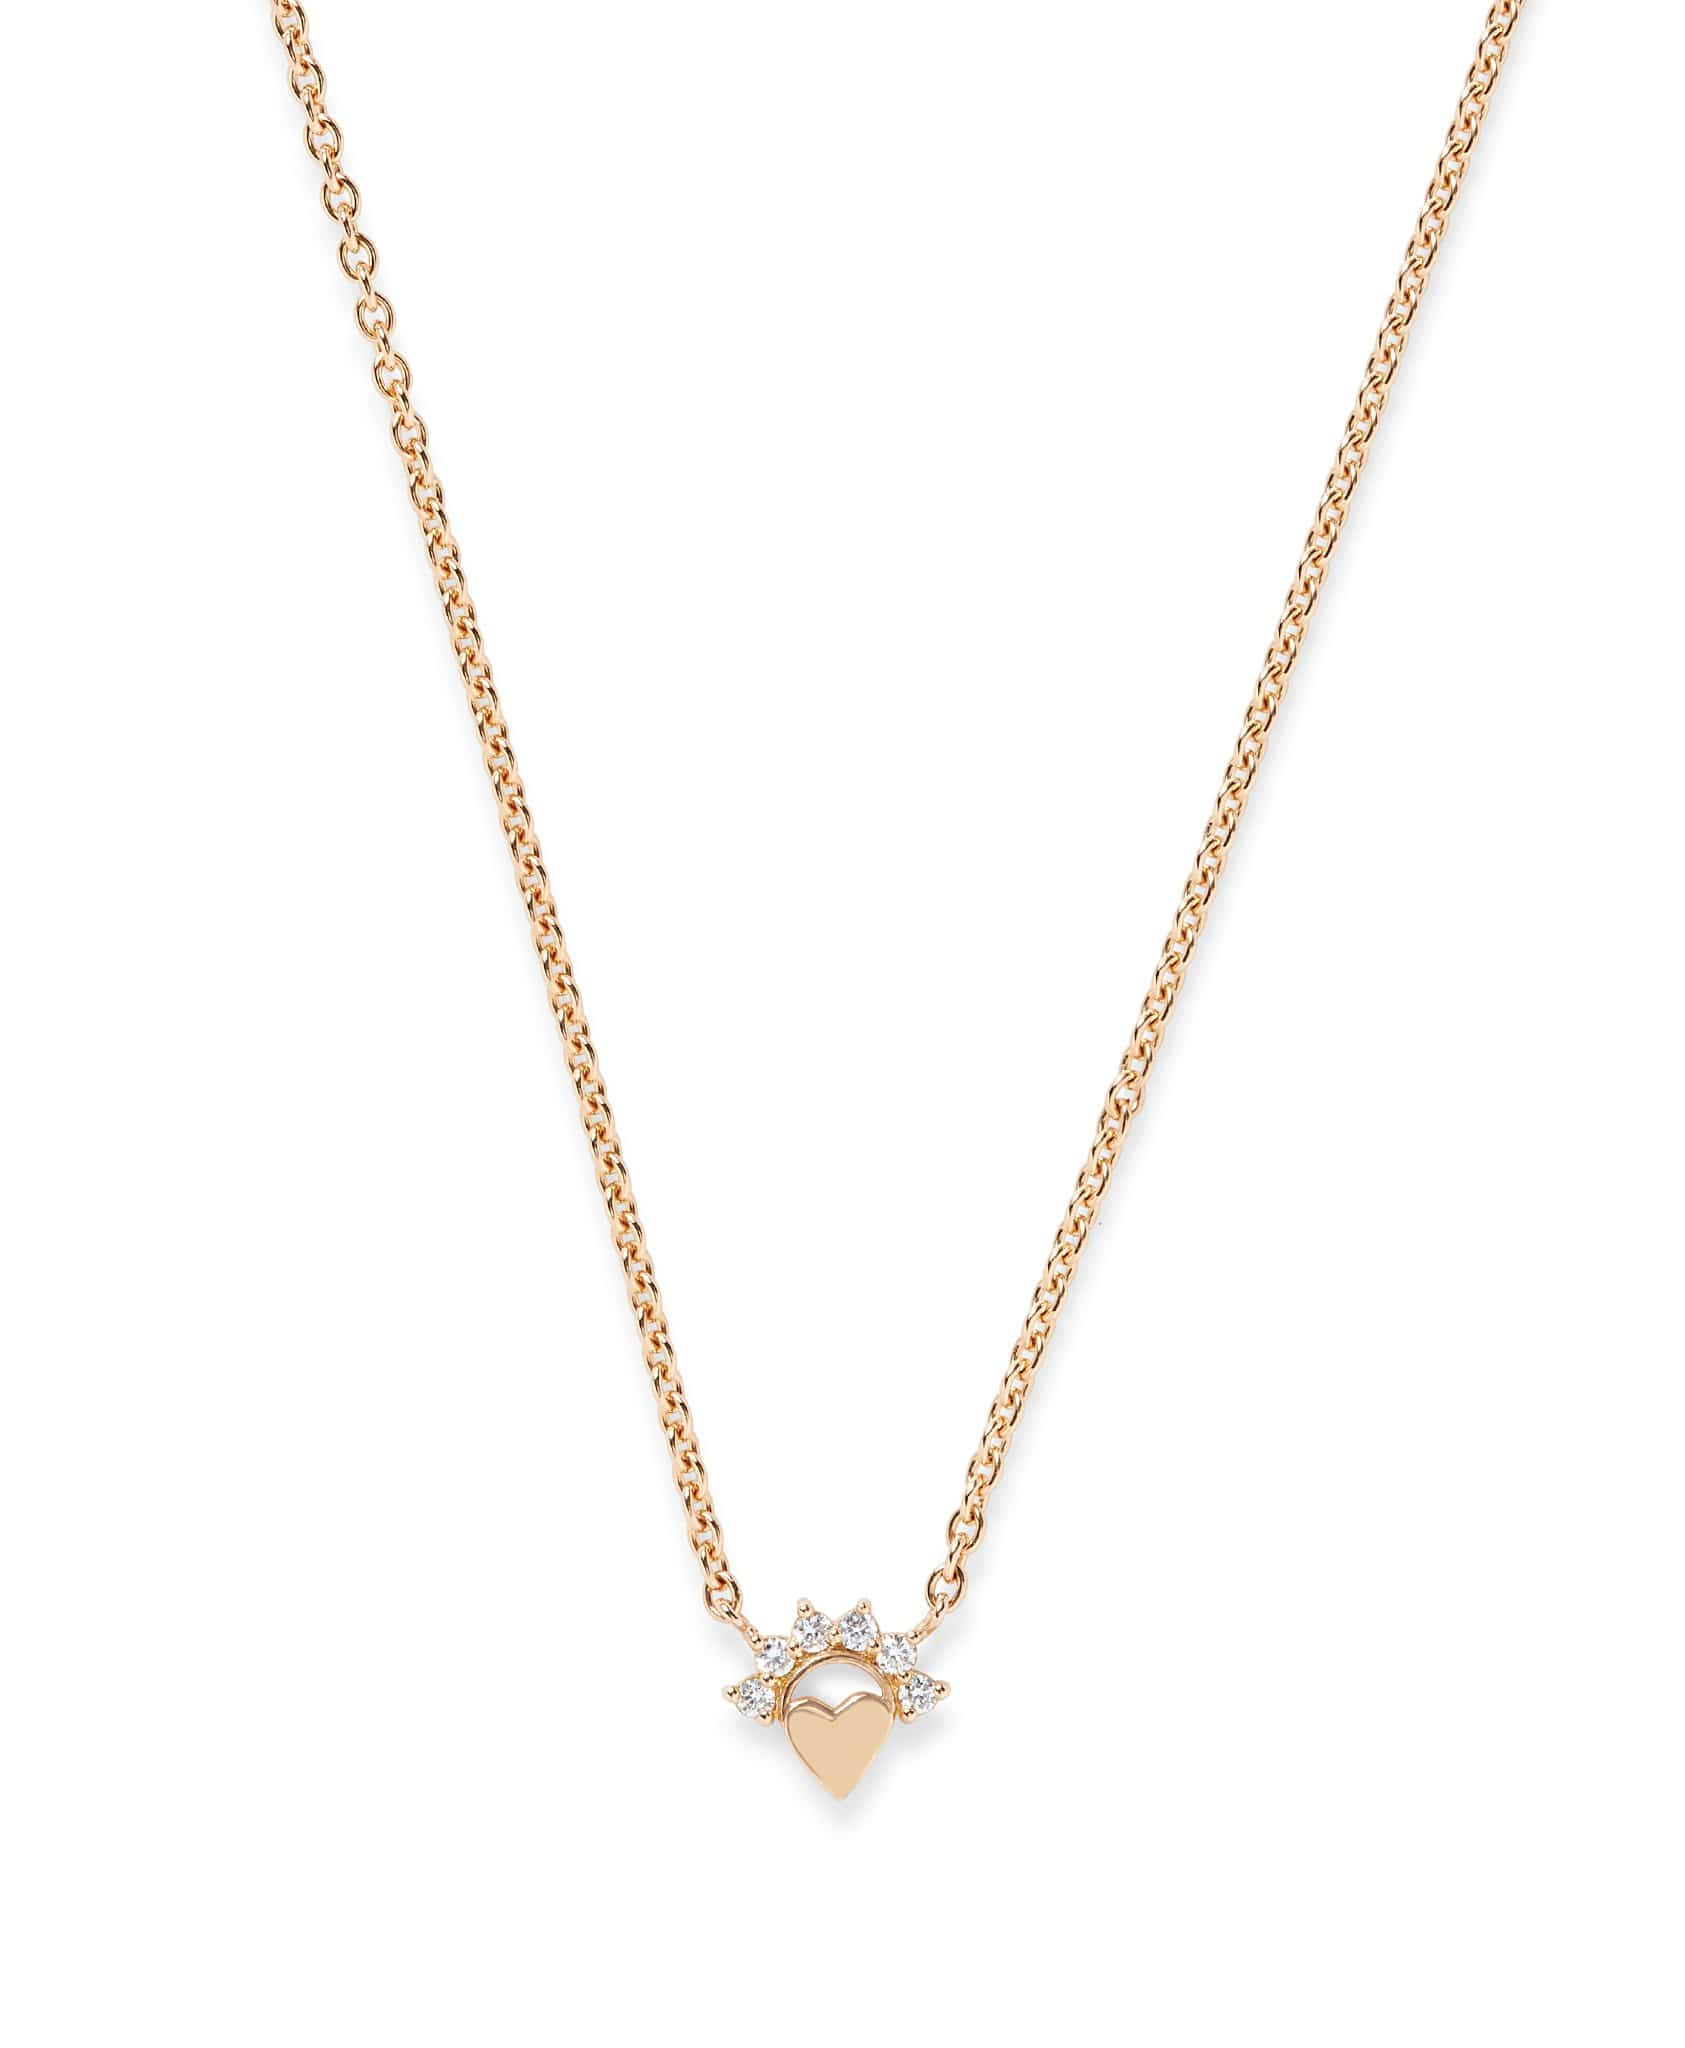 Small Love Pendant: Discover Luxury Fine Jewelry | Nouvel Heritage